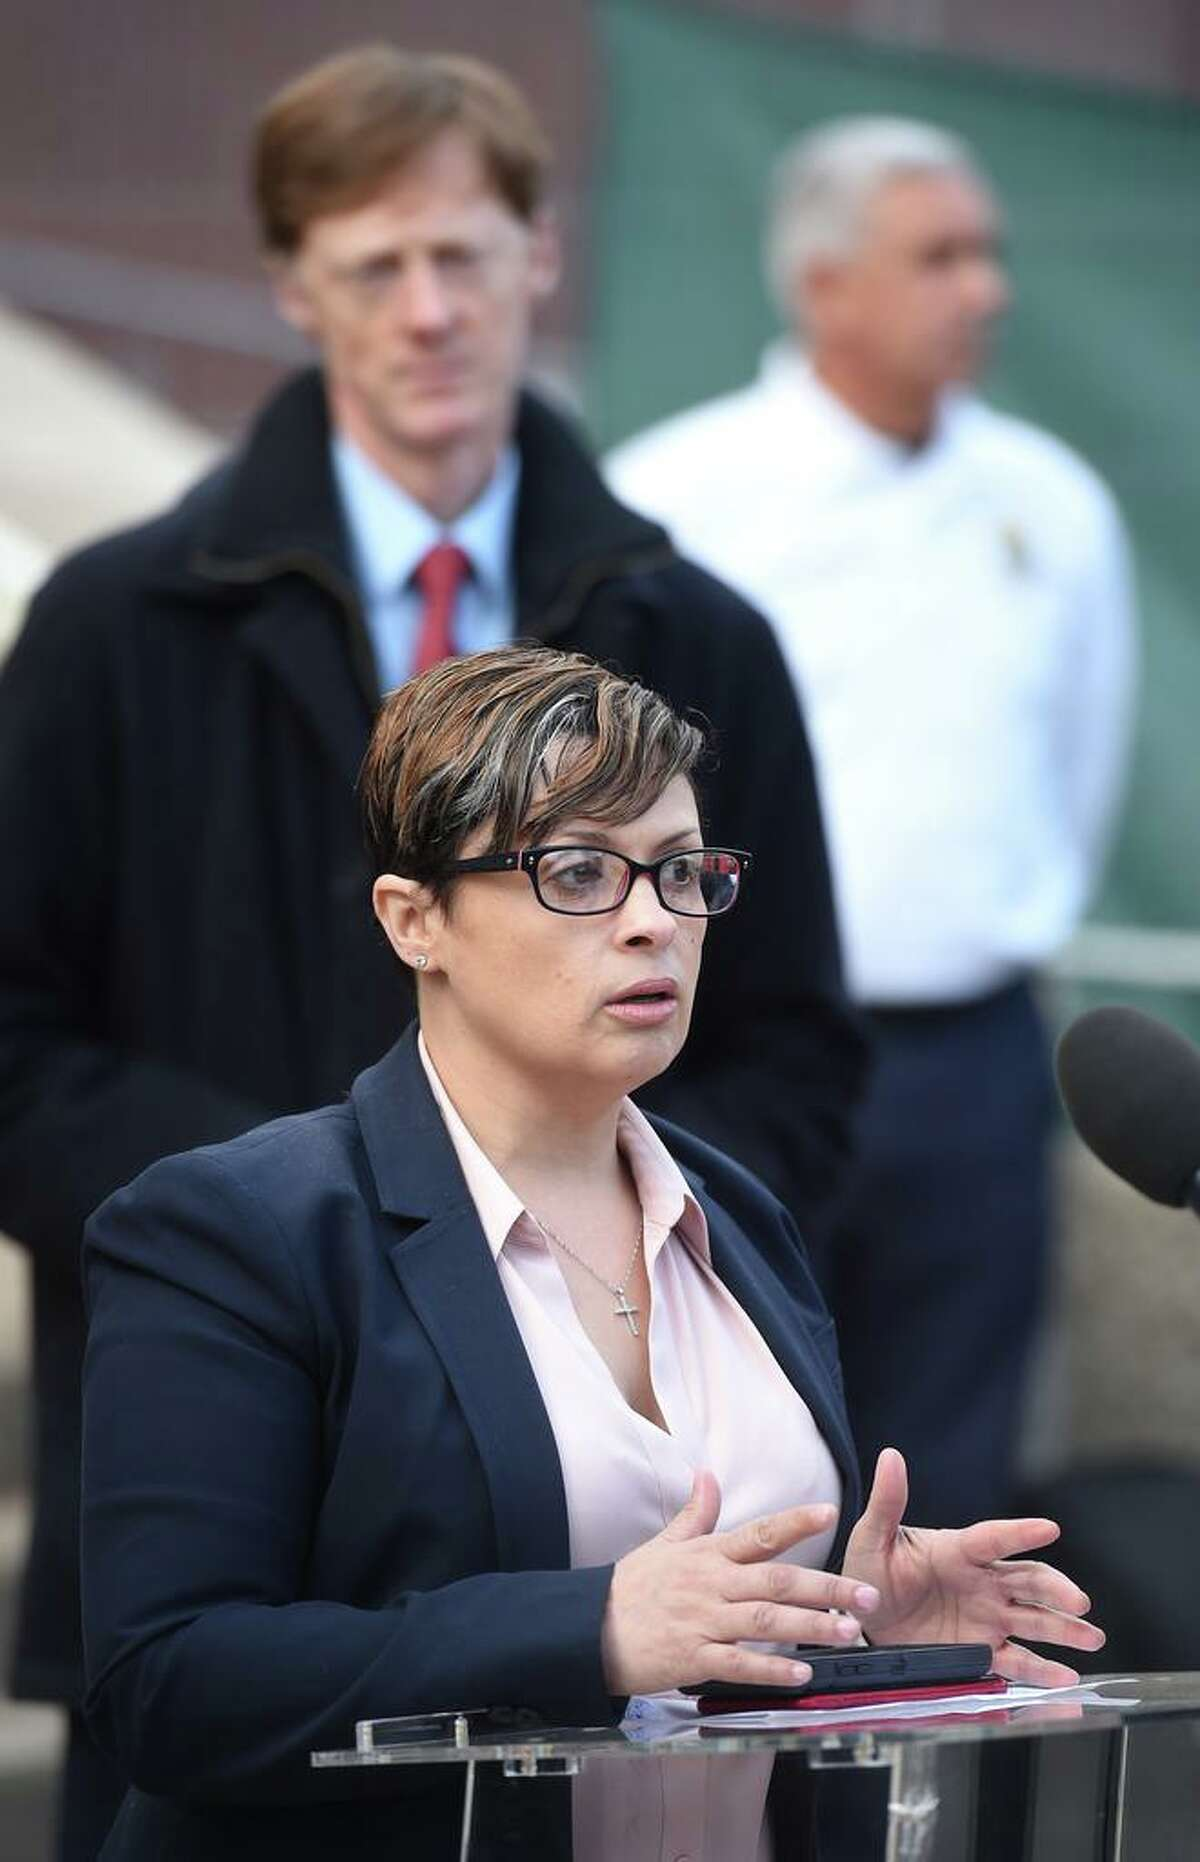 Maritza Bond, New Haven Director of Health, answers questions during a press briefing outside of the Hall of Records in New Haven on March 20, 2020. Behind her is New Haven Mayor Justin Elicker.